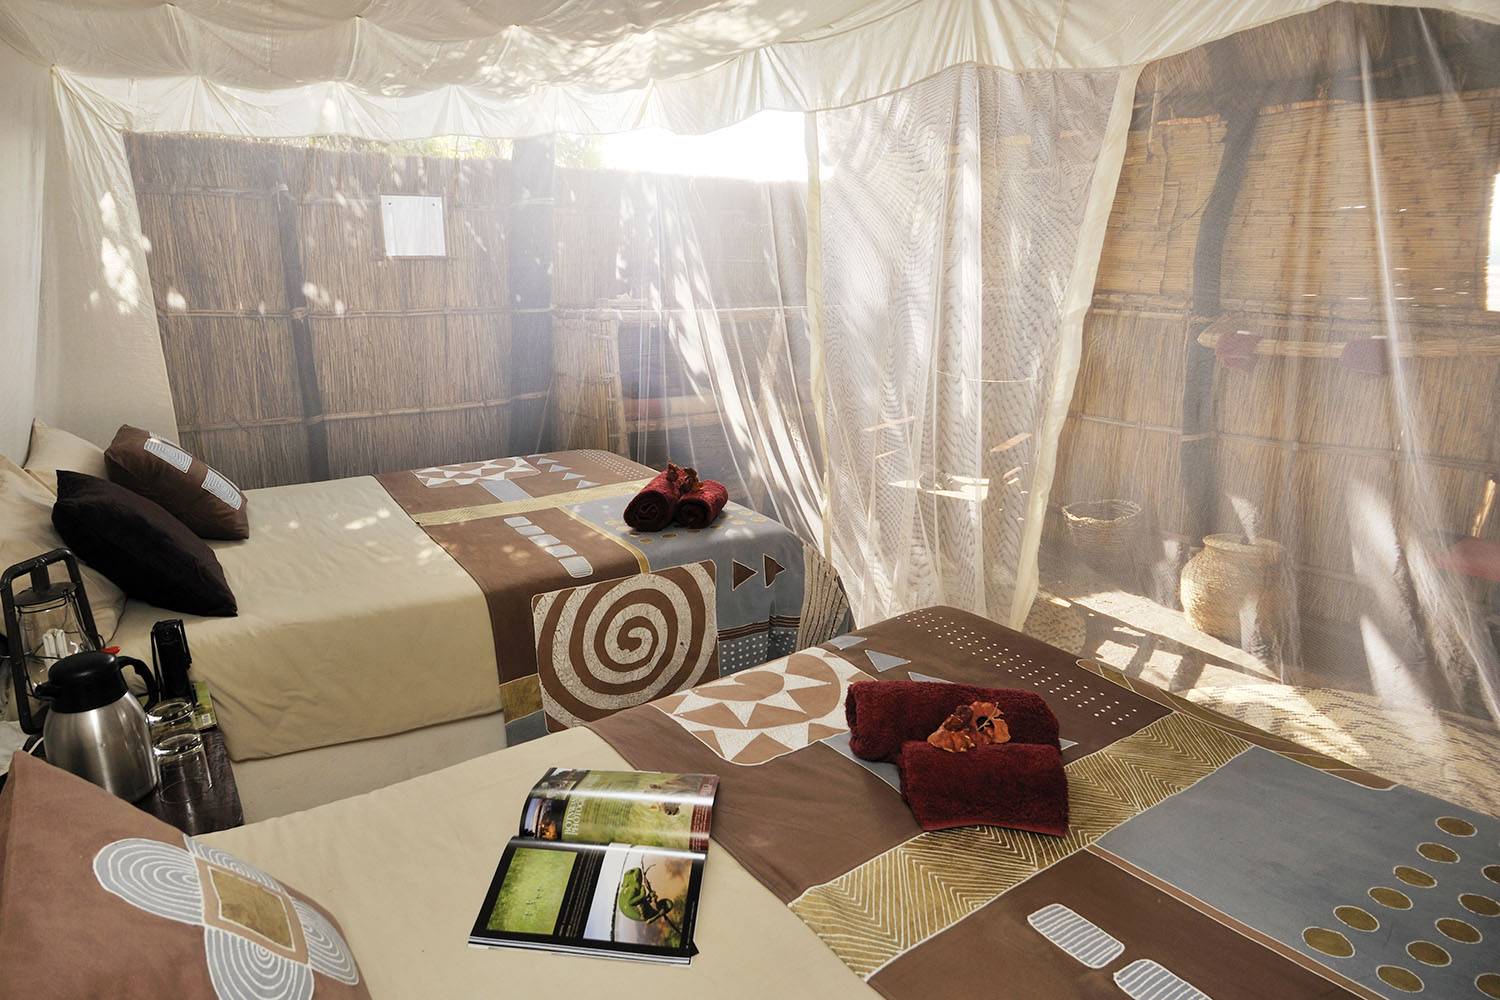 tafika-camp-lodge-zambia-in-style-tours-safari-packages-lodges-nsefu-sector-south-luangwa-national-park-camp-chalet